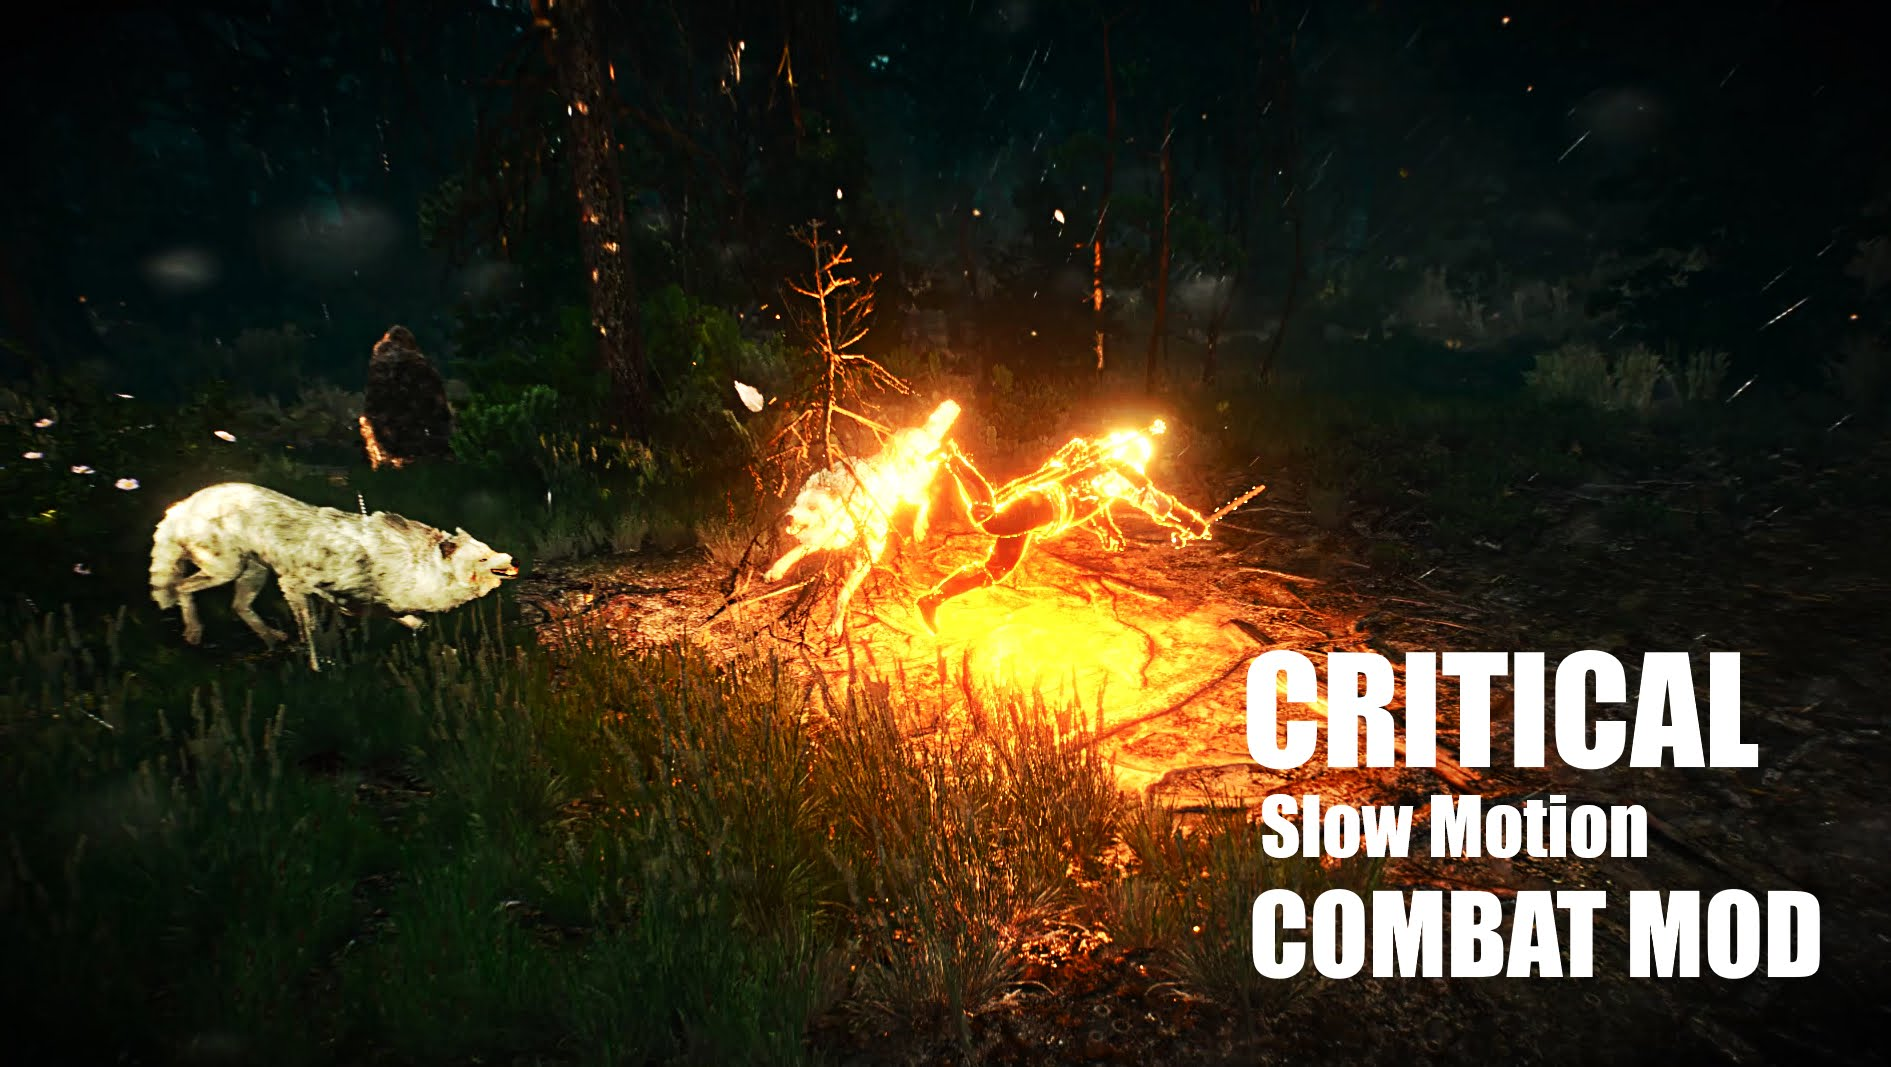 Critical Slow Motion Combat Mod для The Witcher 3: Wild Hunt - Скриншот 1